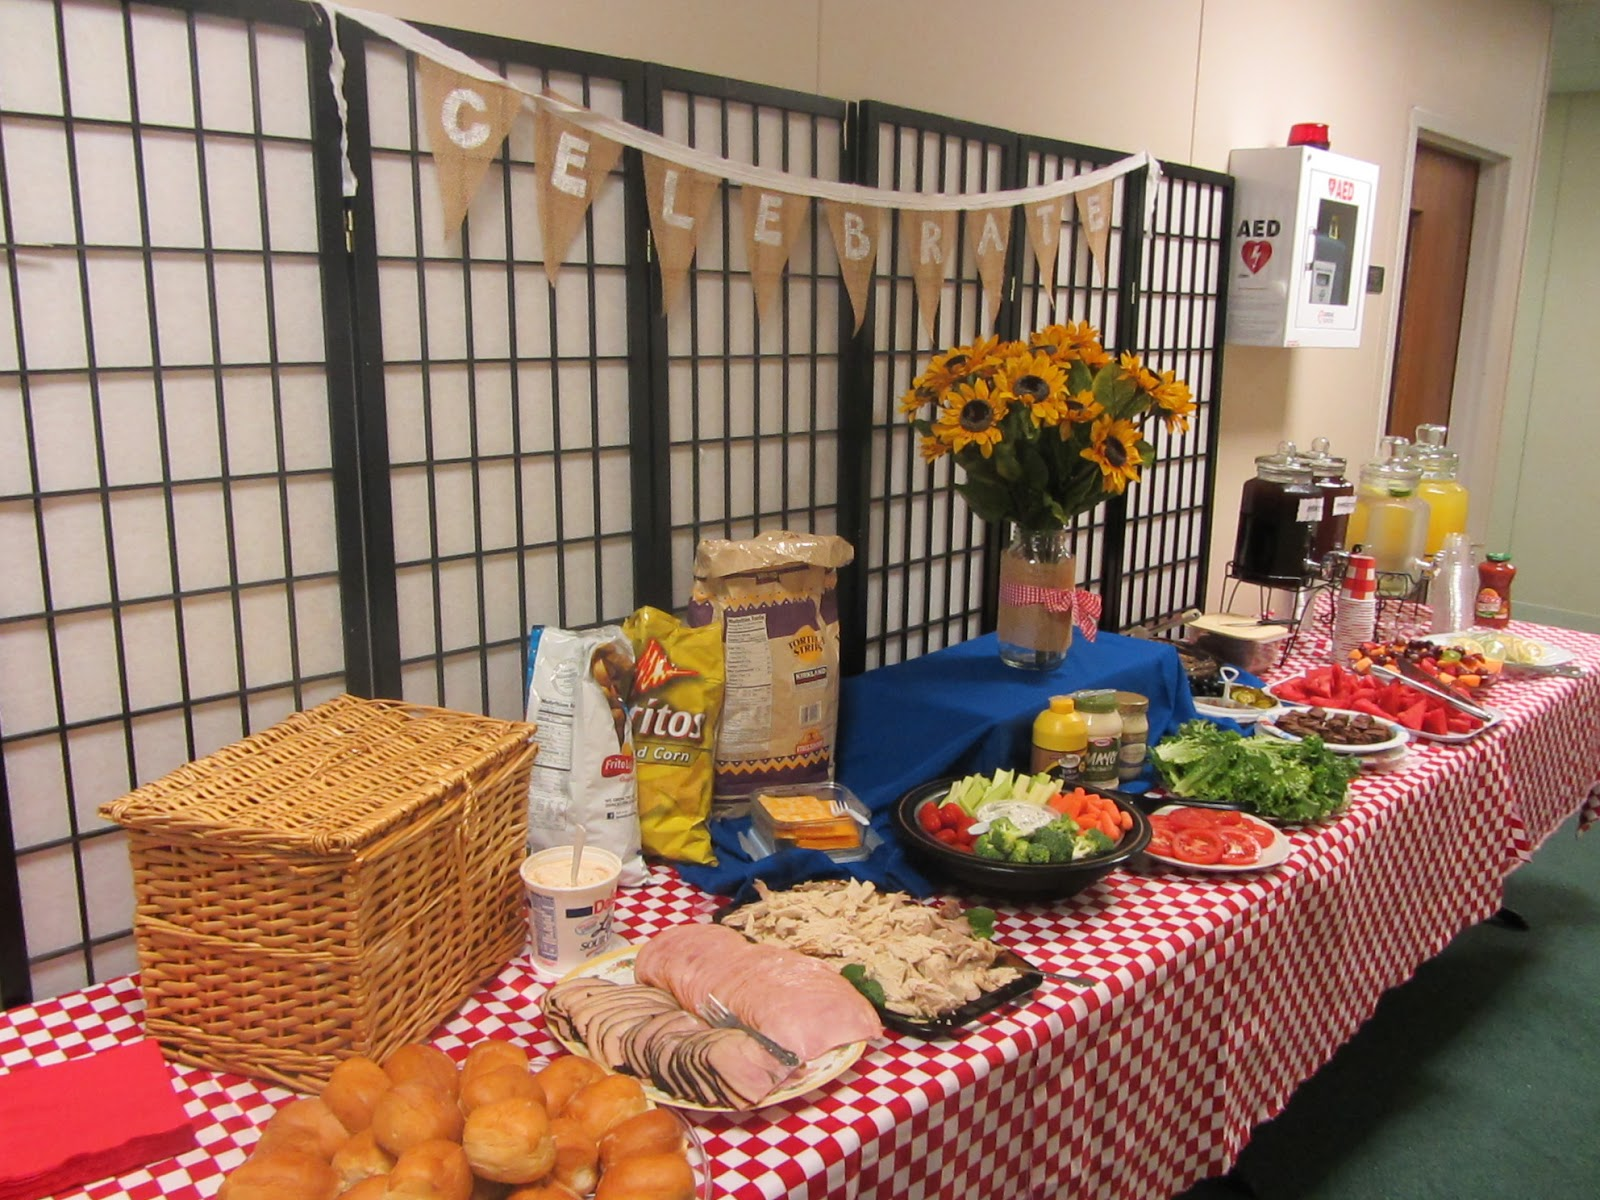 Picnic Themed Decorations So Wonderfully Complex Picnic Themed End Of The Year Luncheon